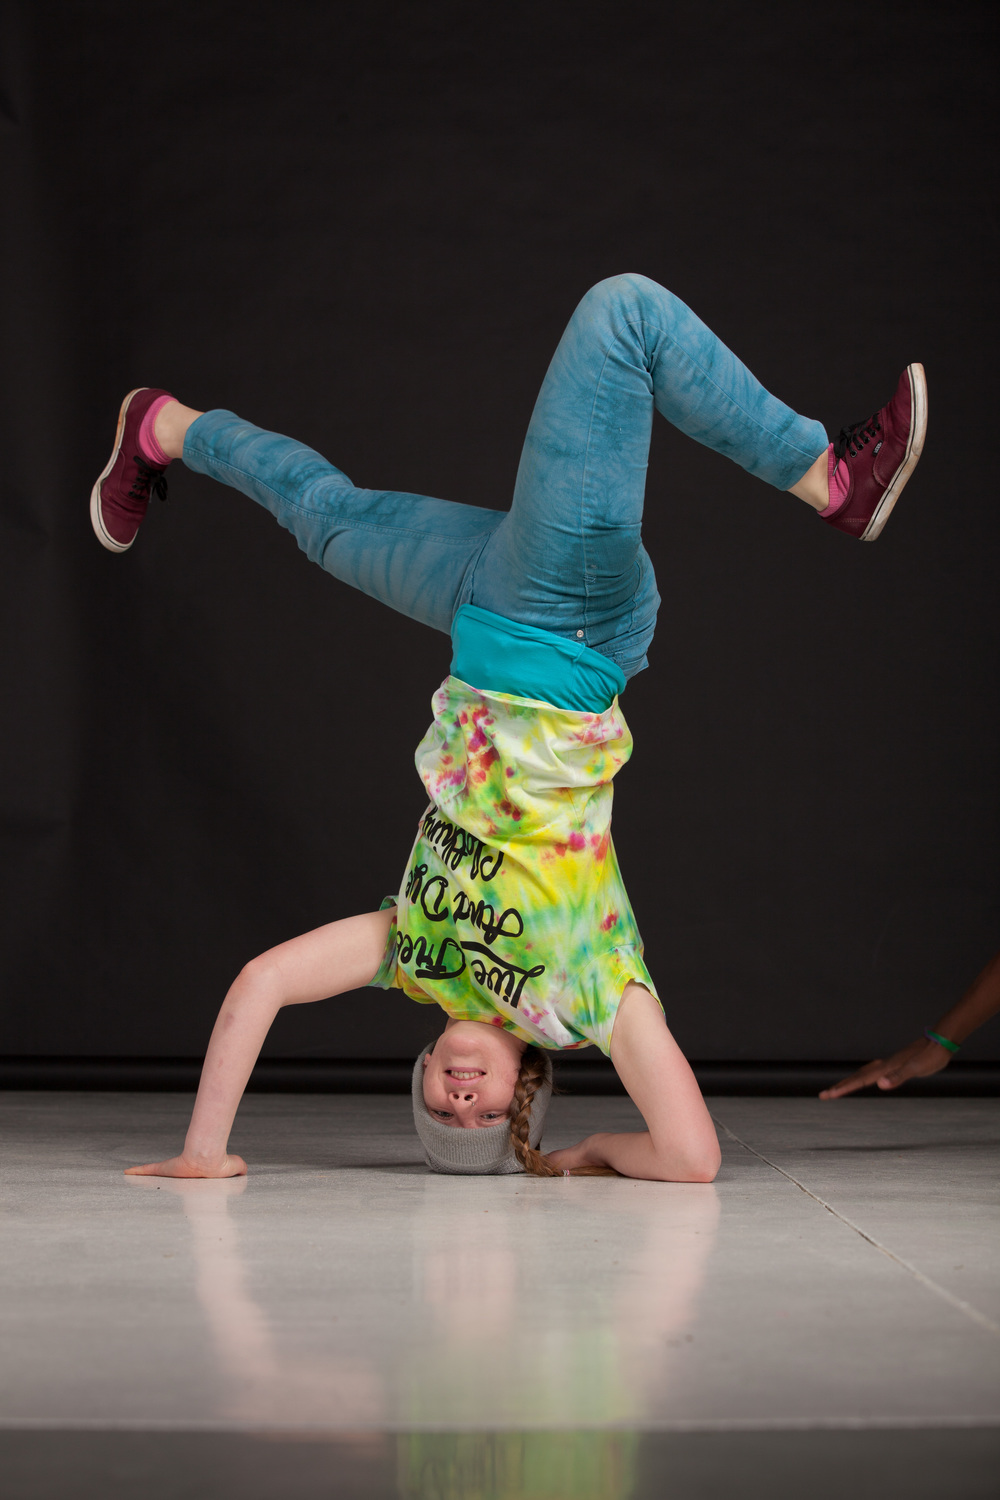 Charlotte model bboy dancing in t shirt